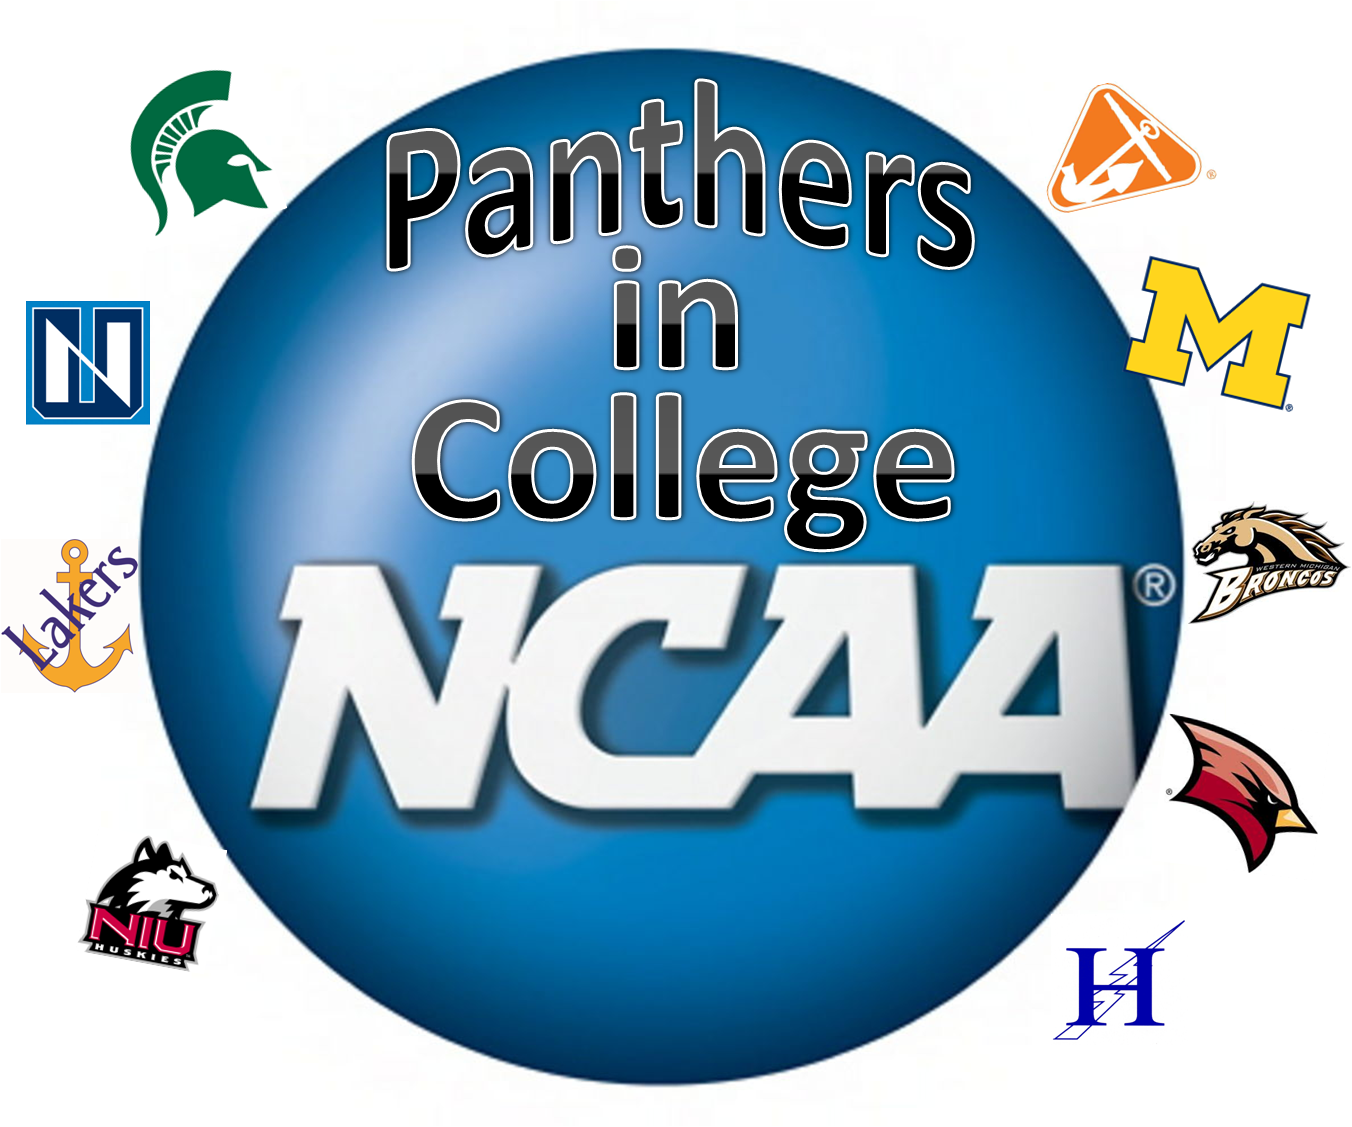 panthers in college logo